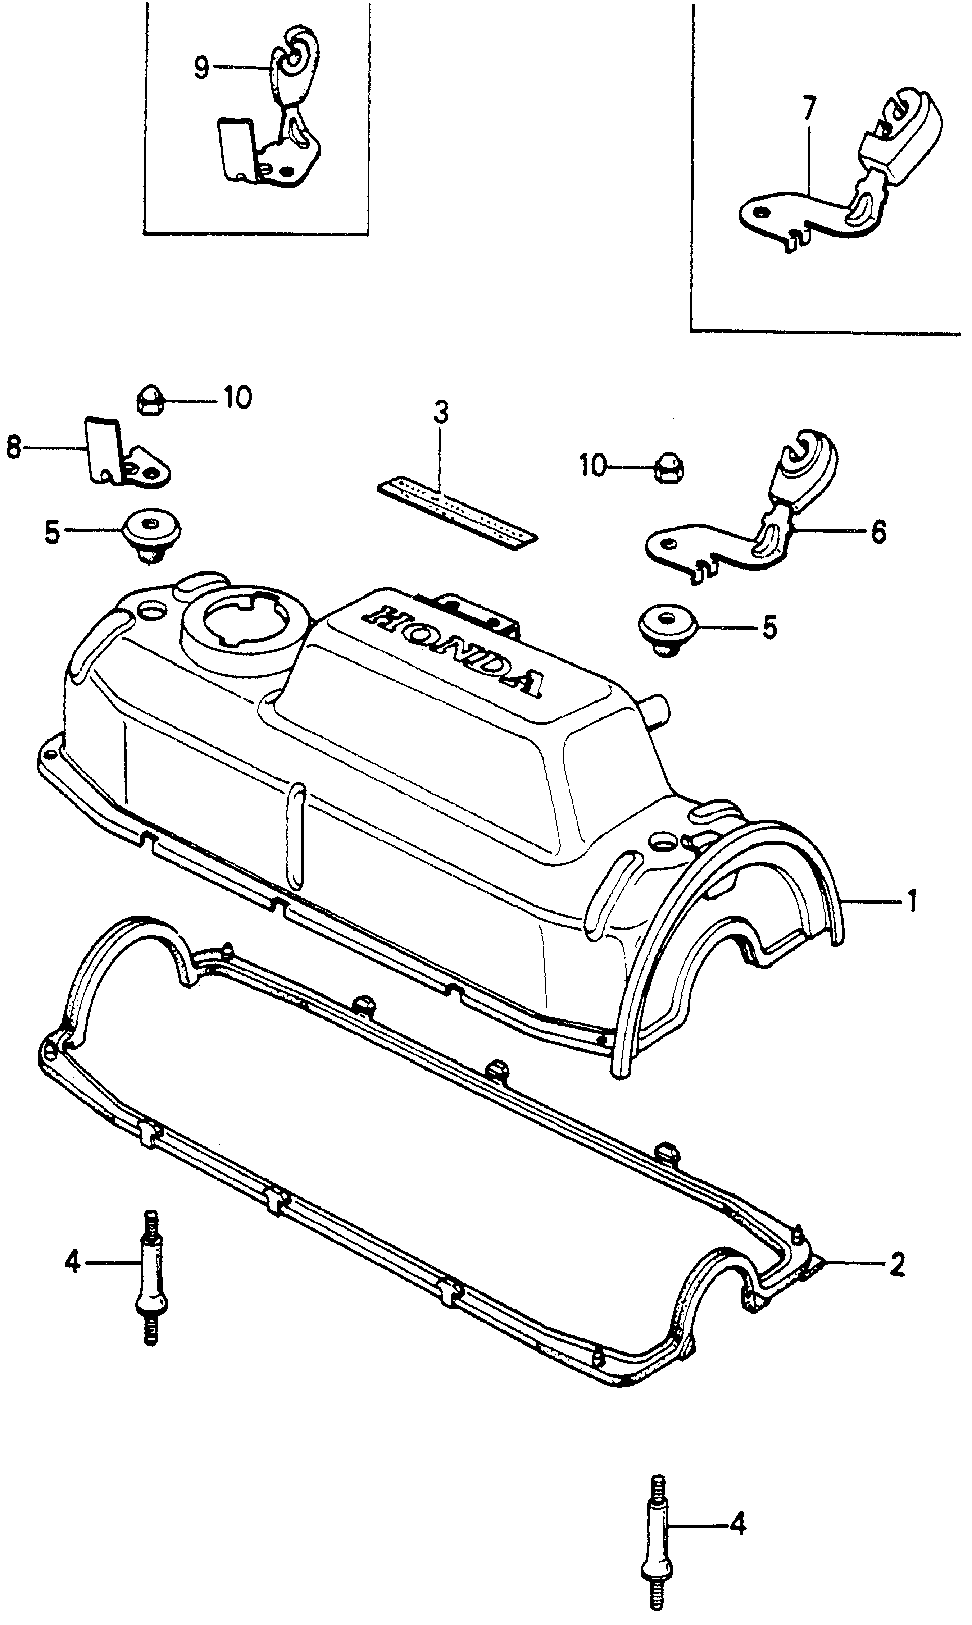 91401-692-660 - CLAMP, CABLE